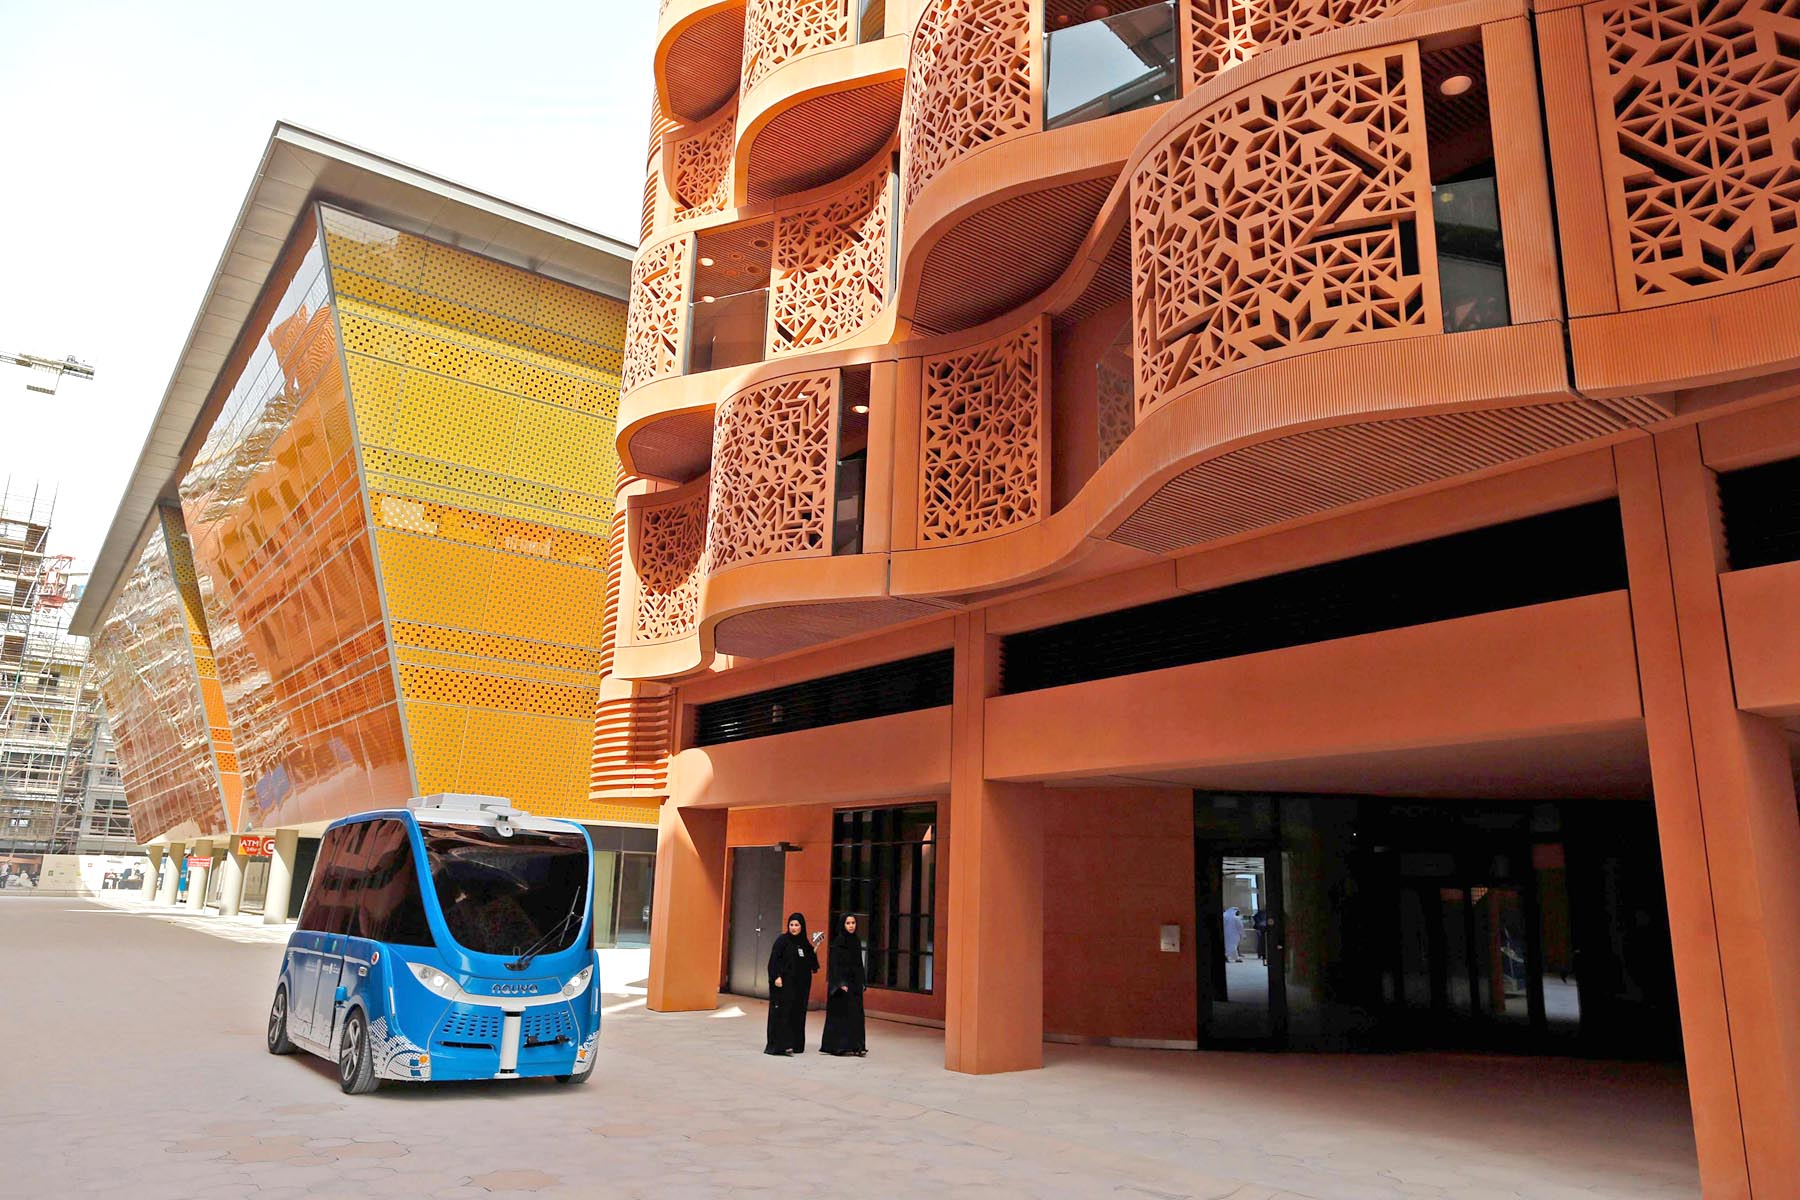 A driverless vehicle at Masdar City, on the eastern outskirts of Abu Dhabi. (AFP)